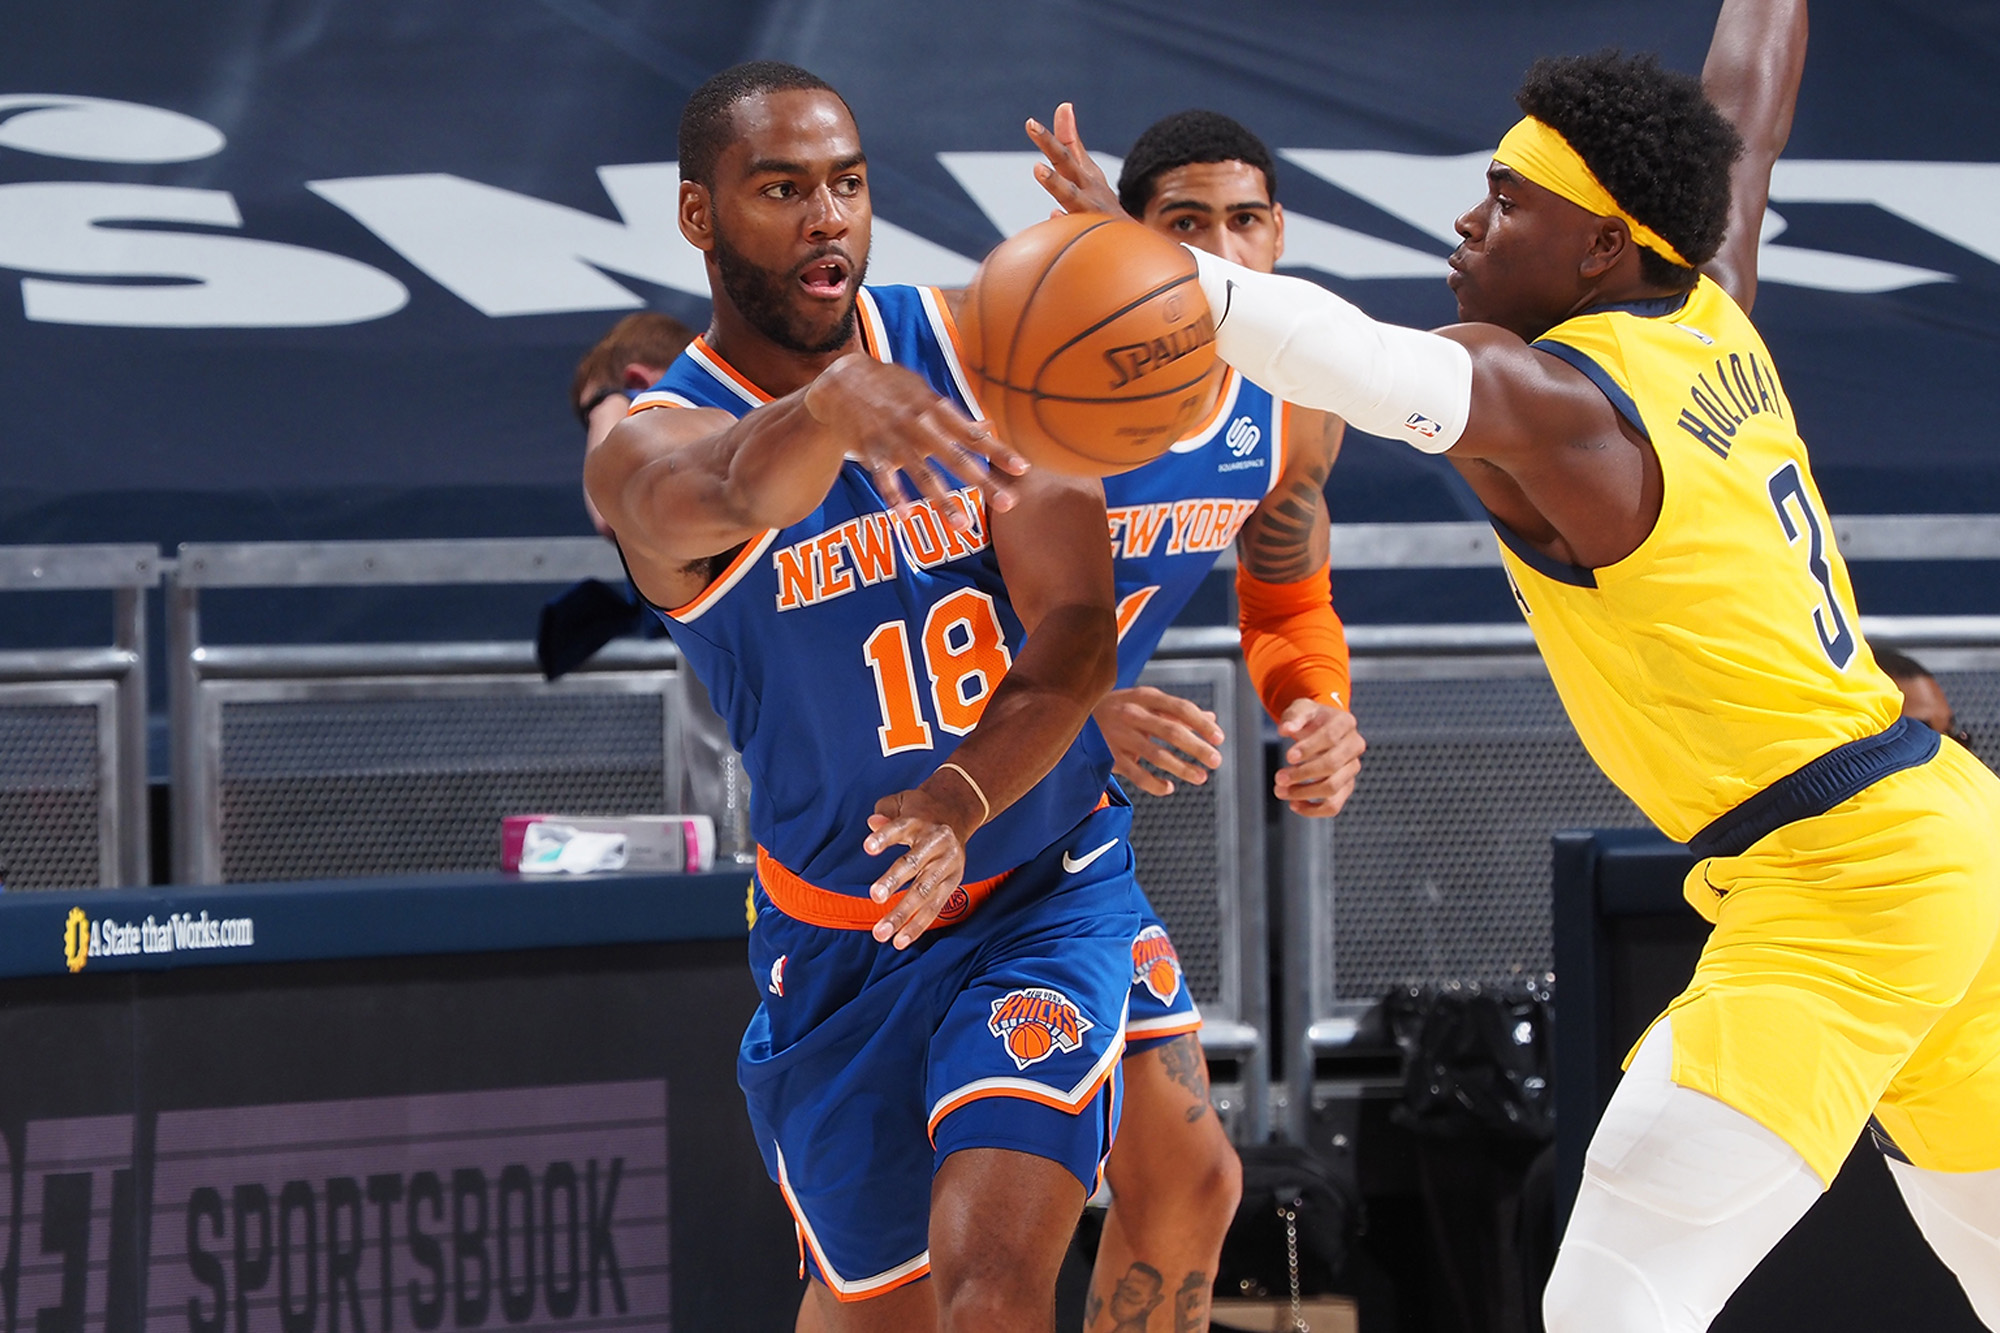 Alec Burks proving to be key addition to Knicks lineup